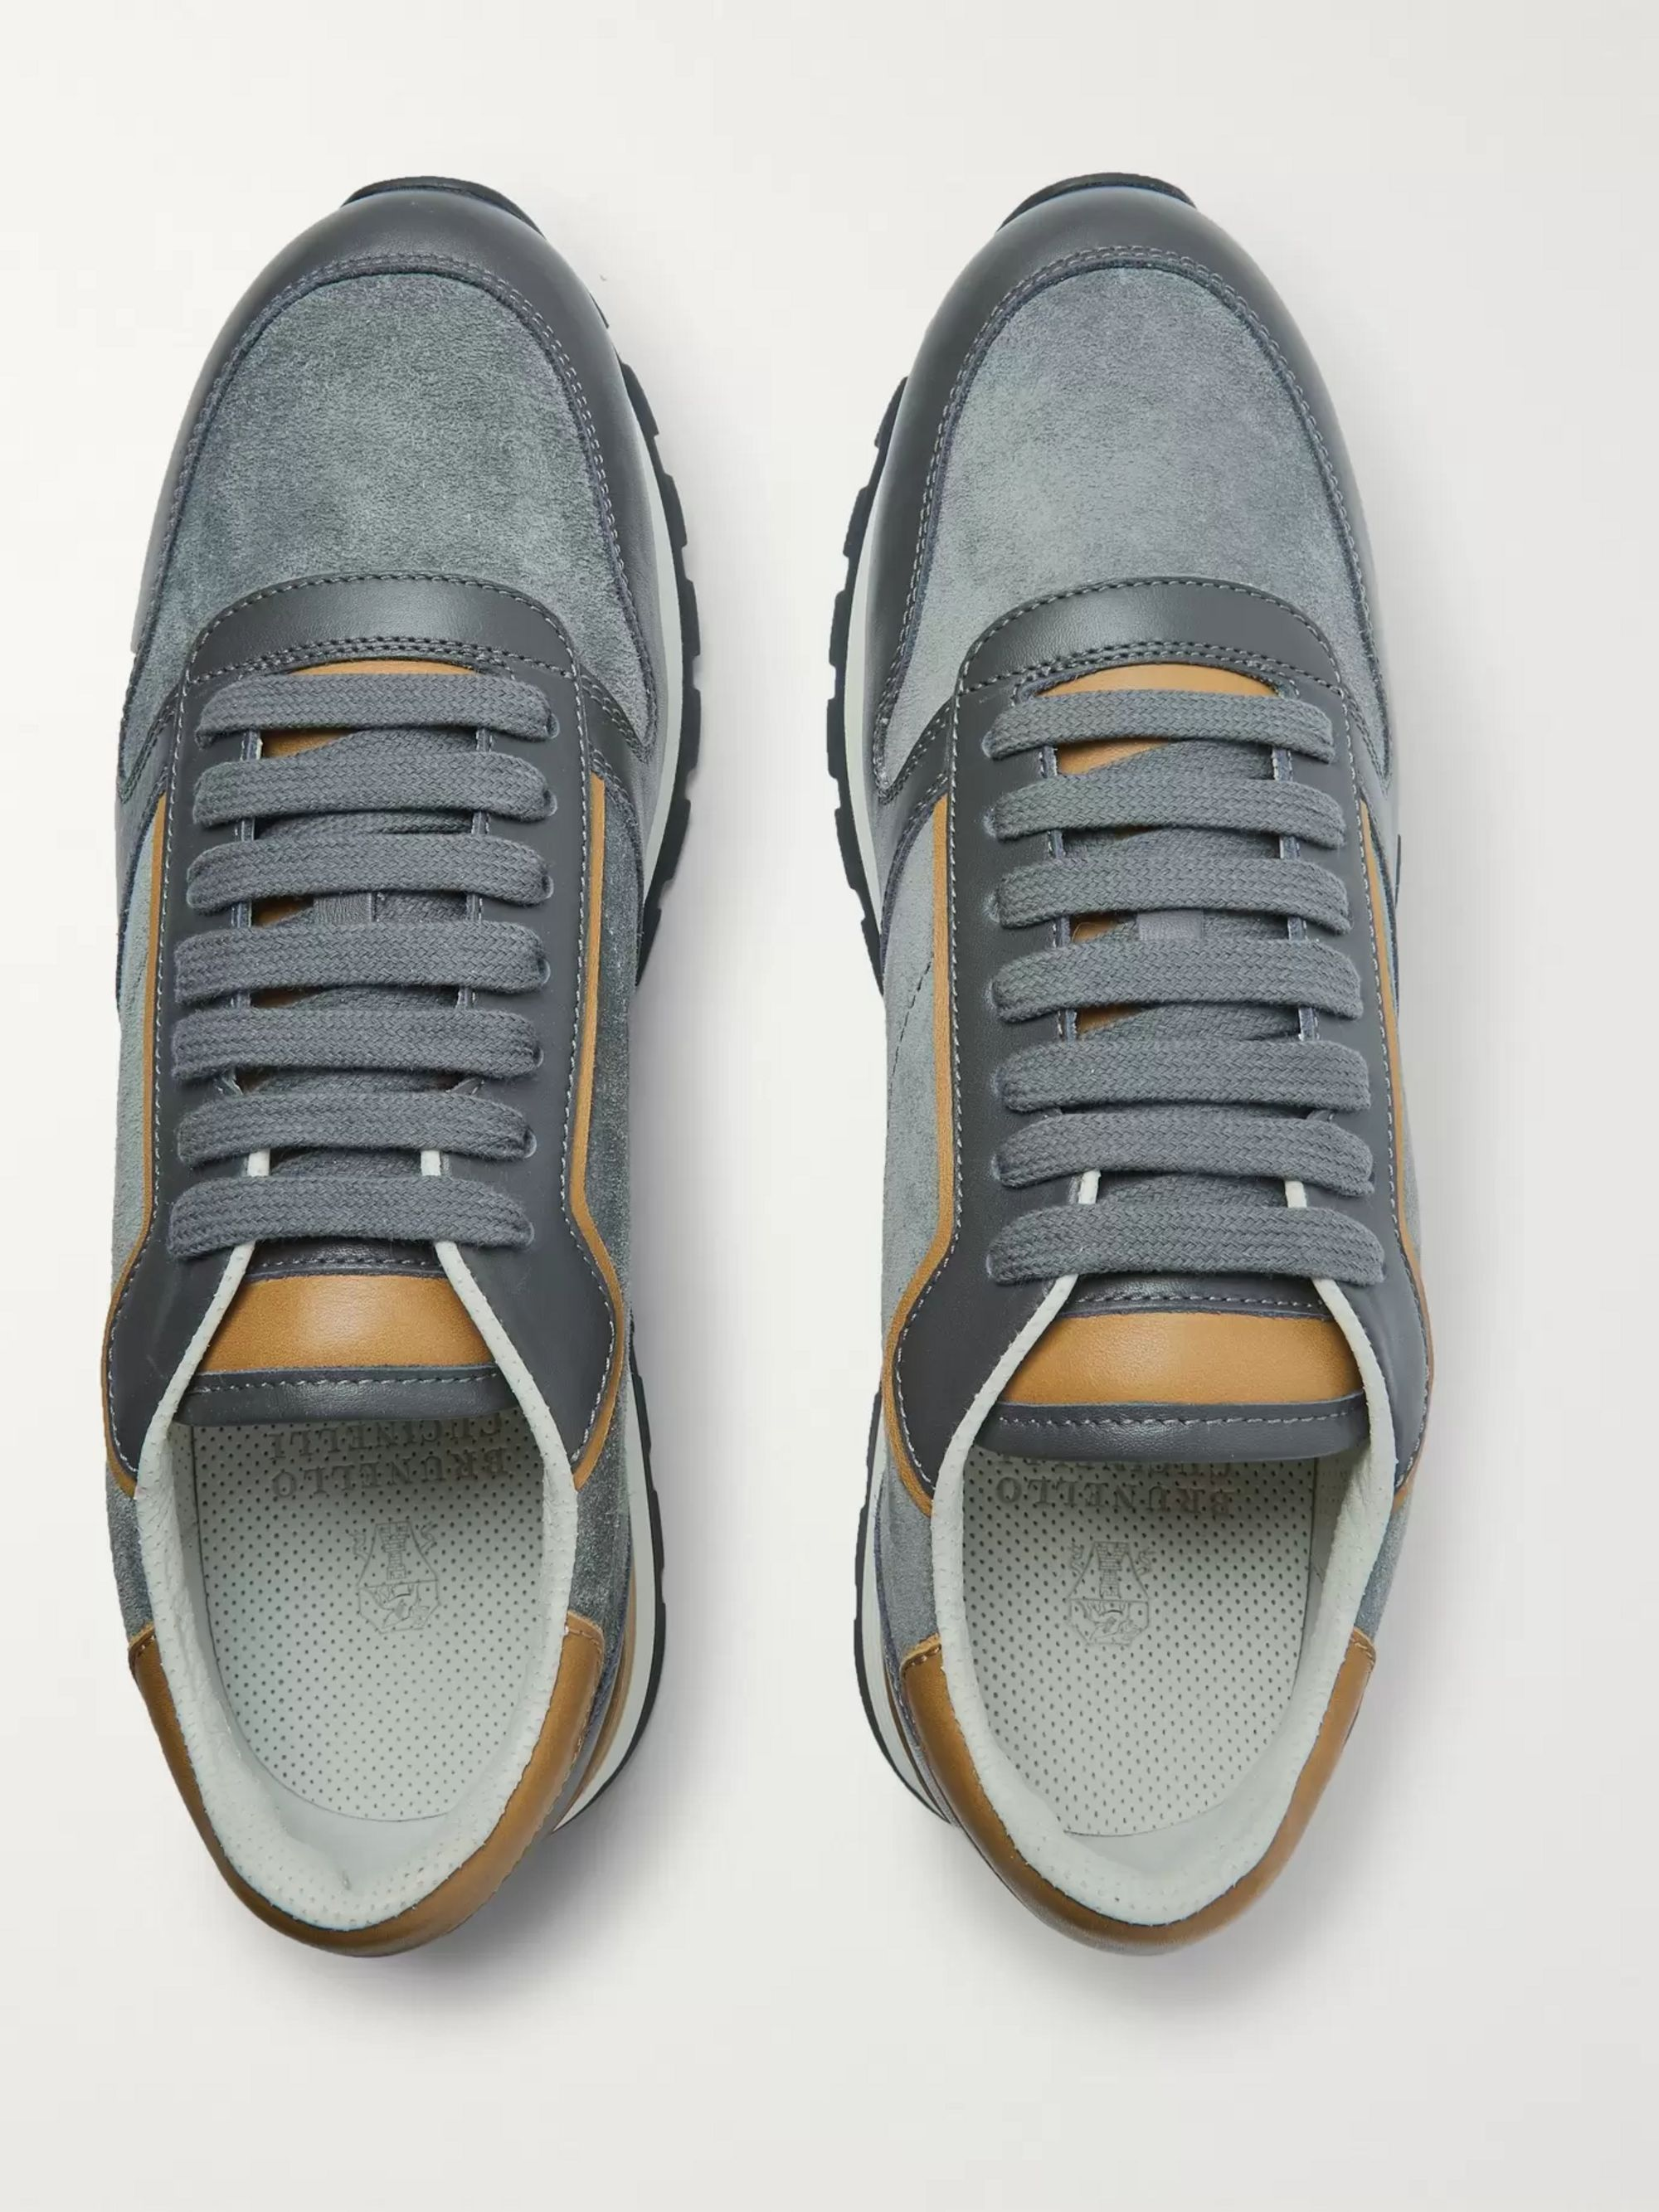 Brunello Cucinelli Suede and Leather Sneakers